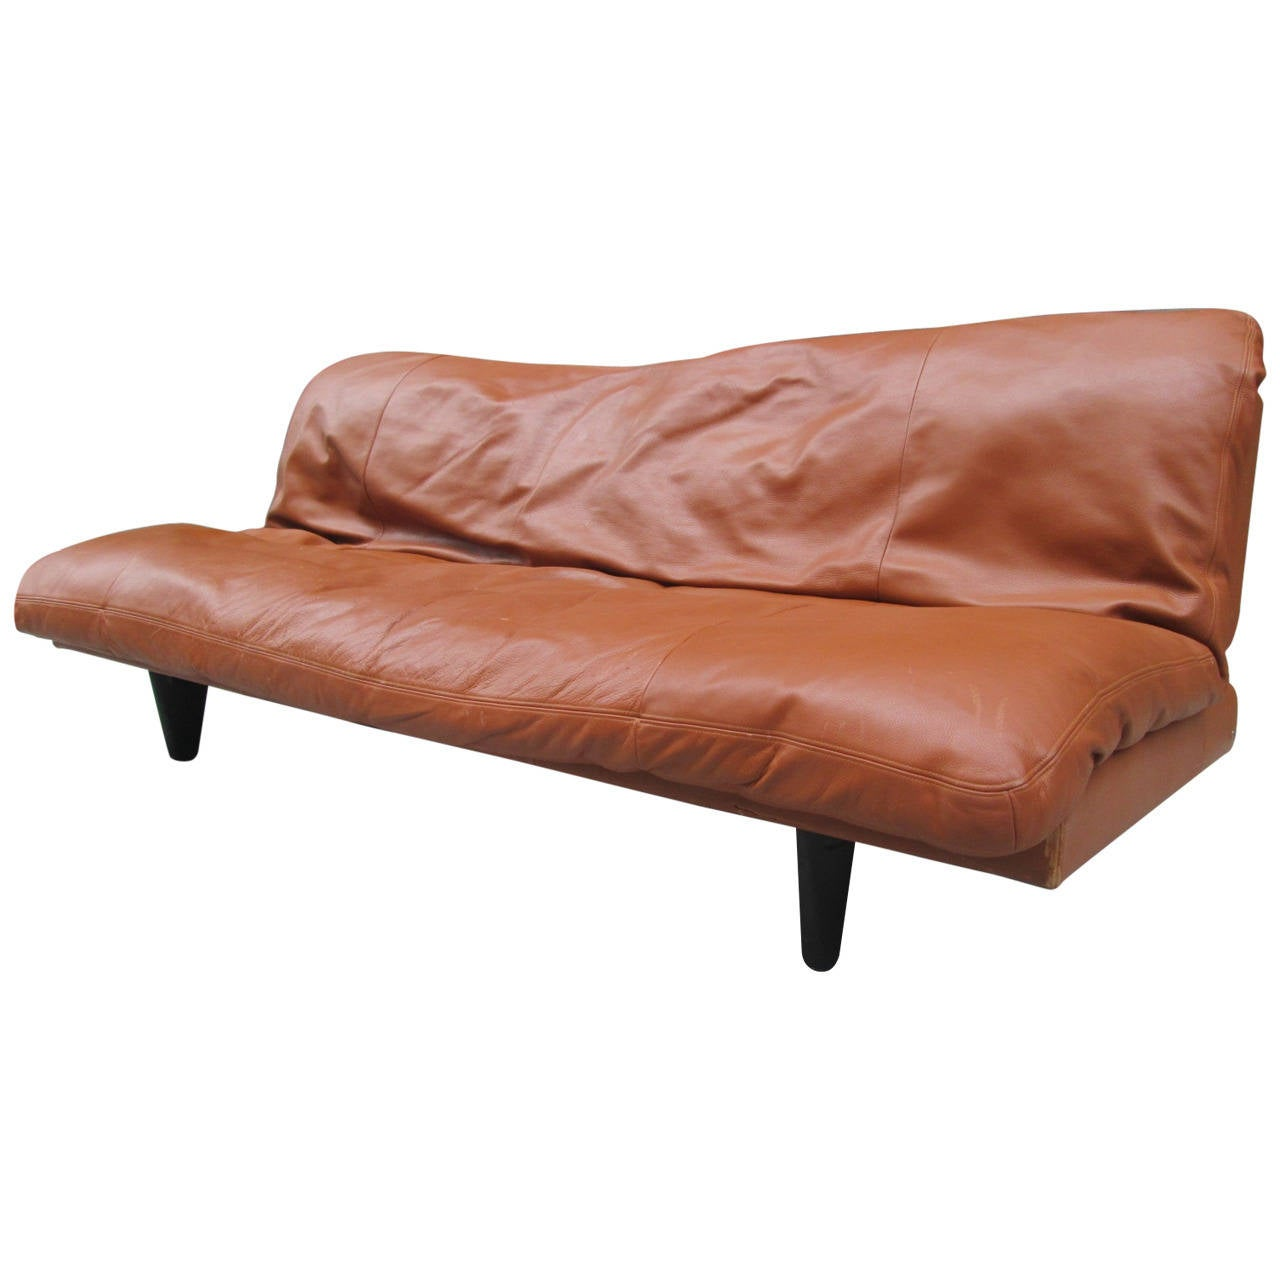 leather convertible sofa by de sede at 1stdibs